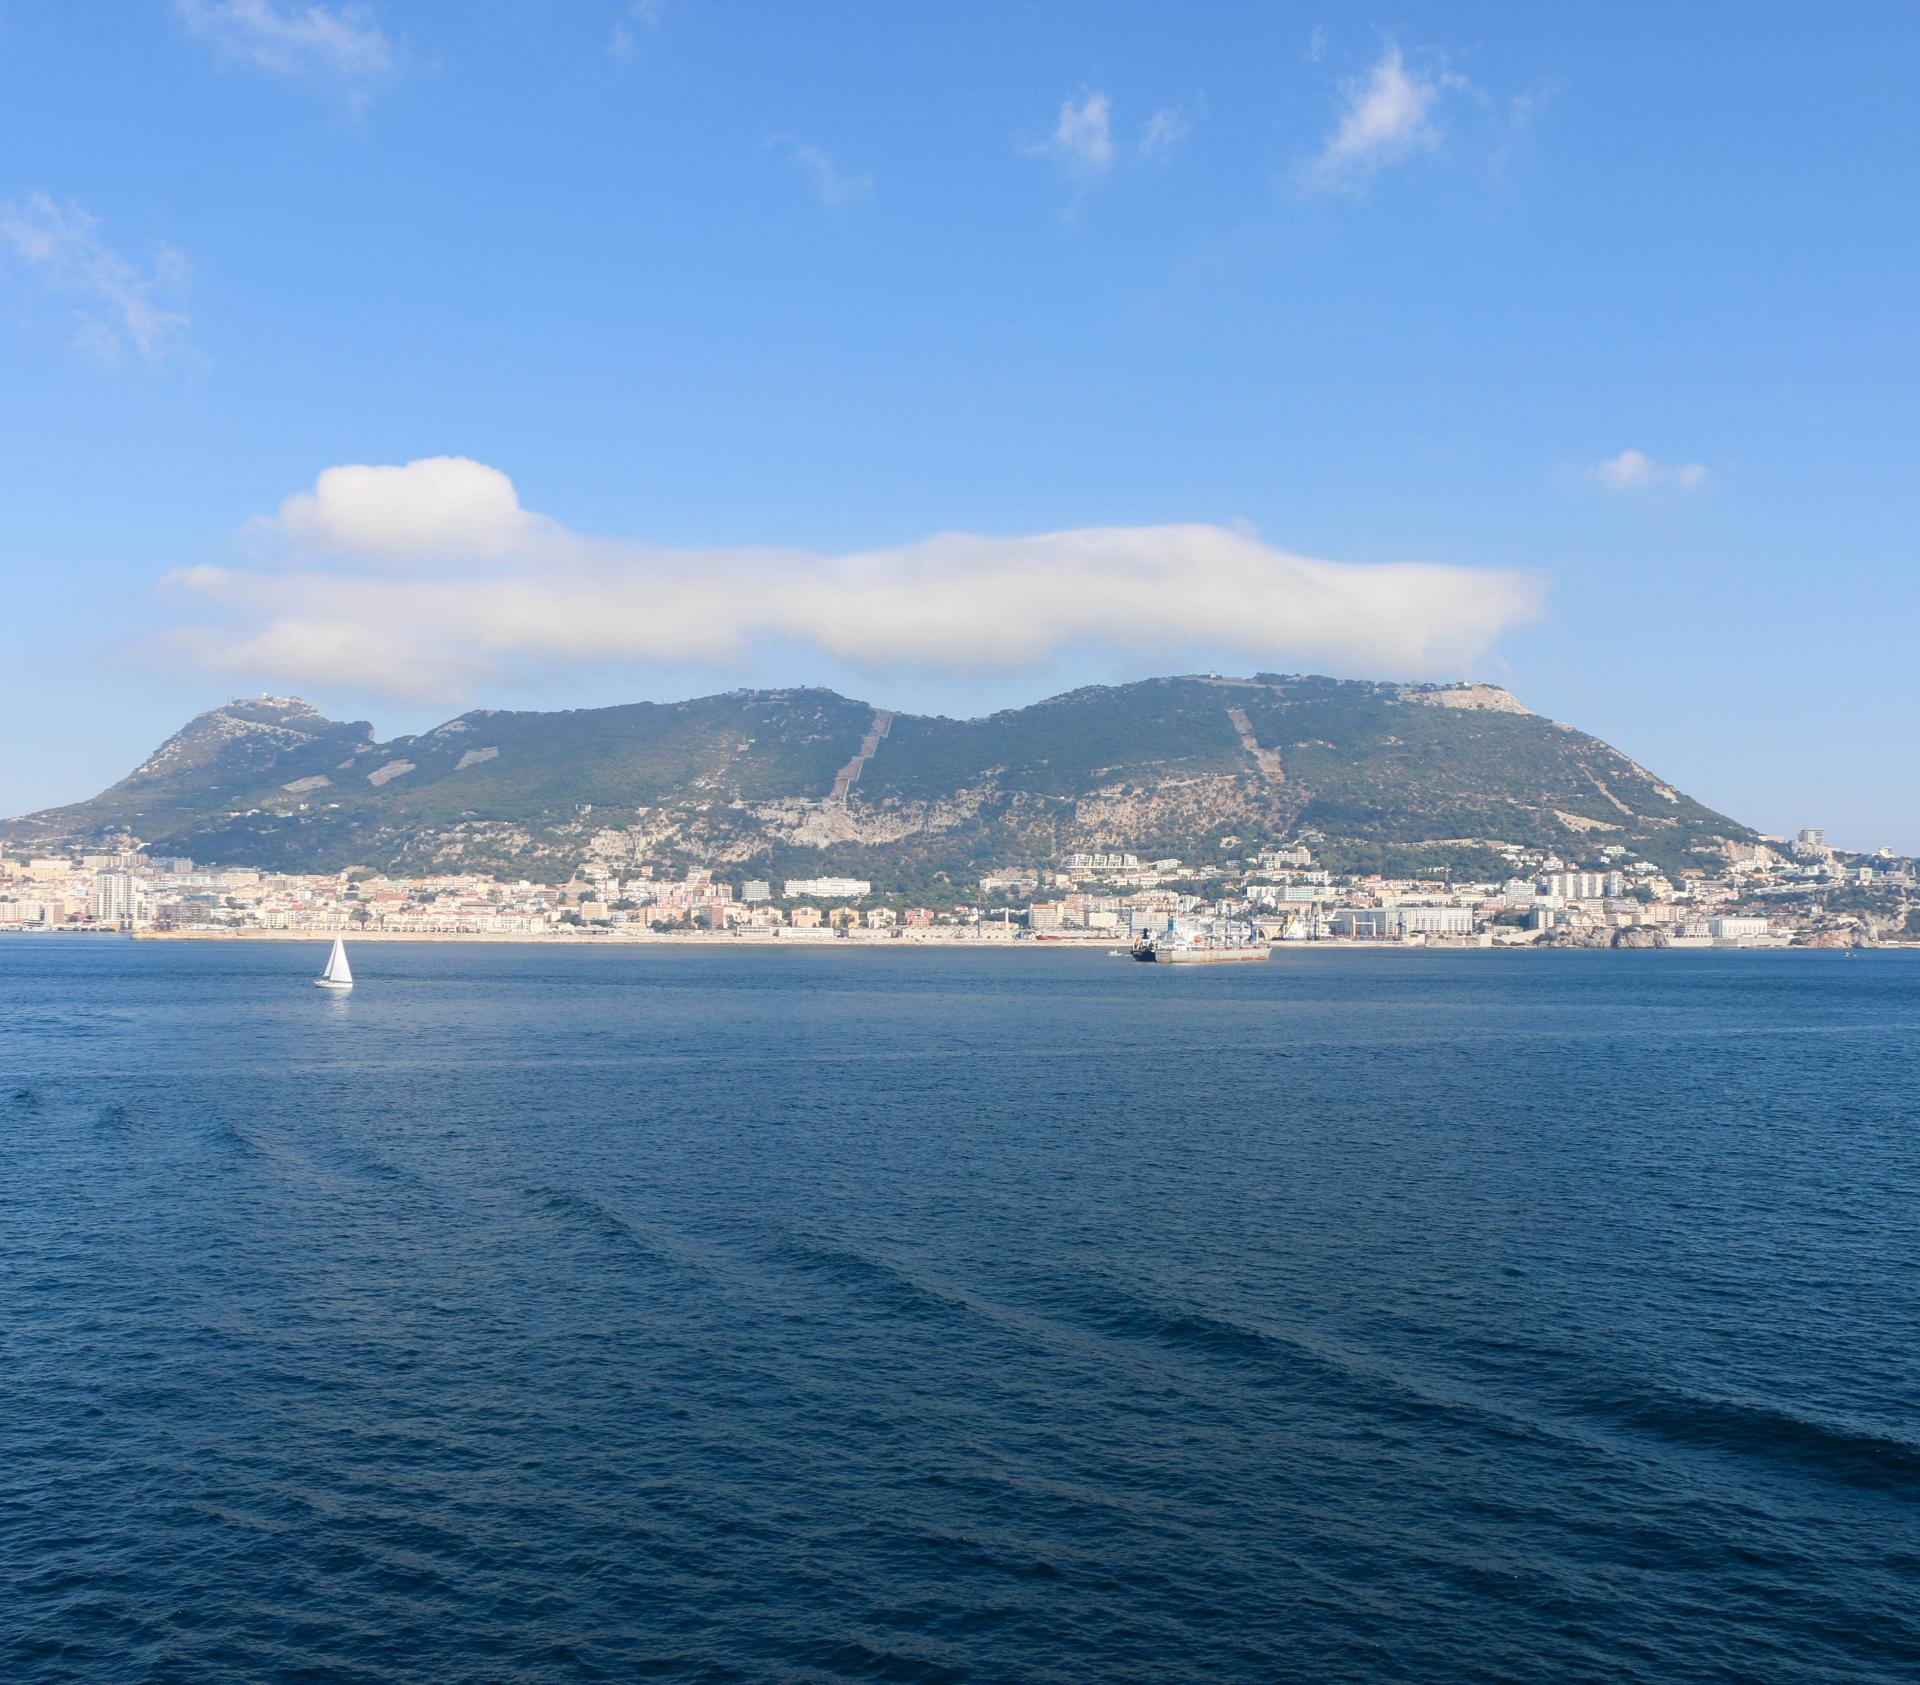 rock of gibraltar view from sea